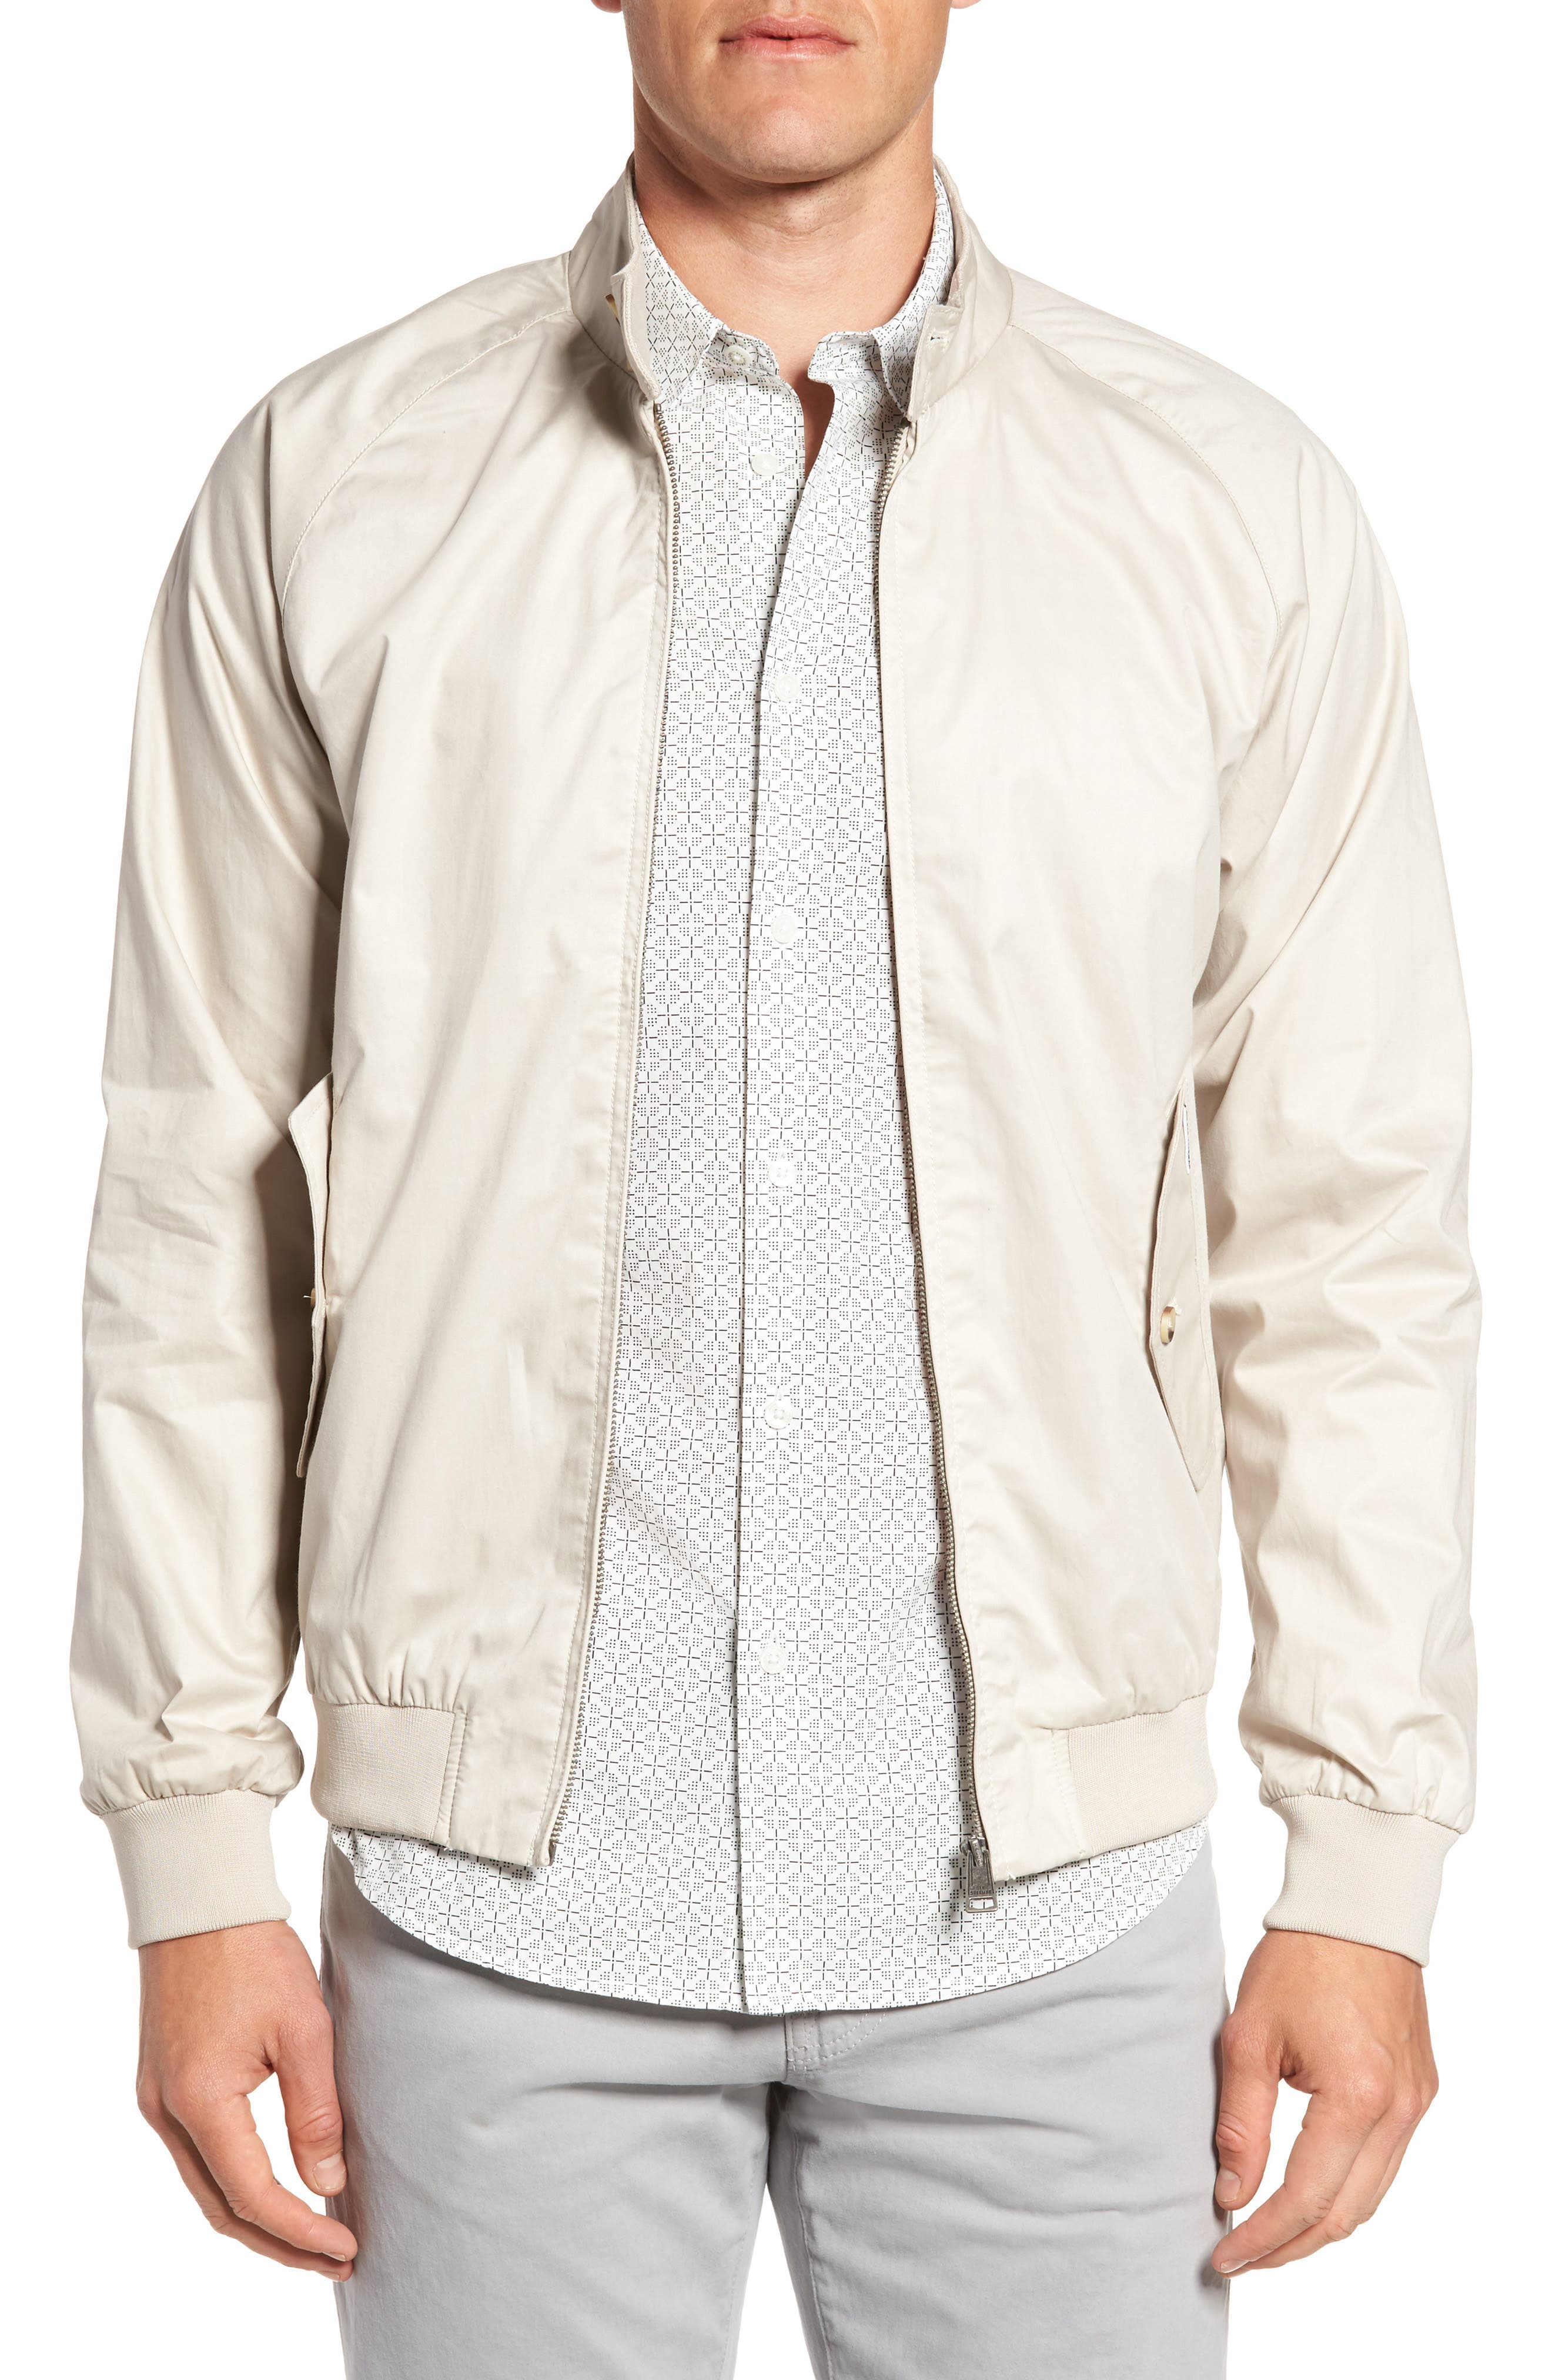 Ben Sherman Core Harrington Jacket